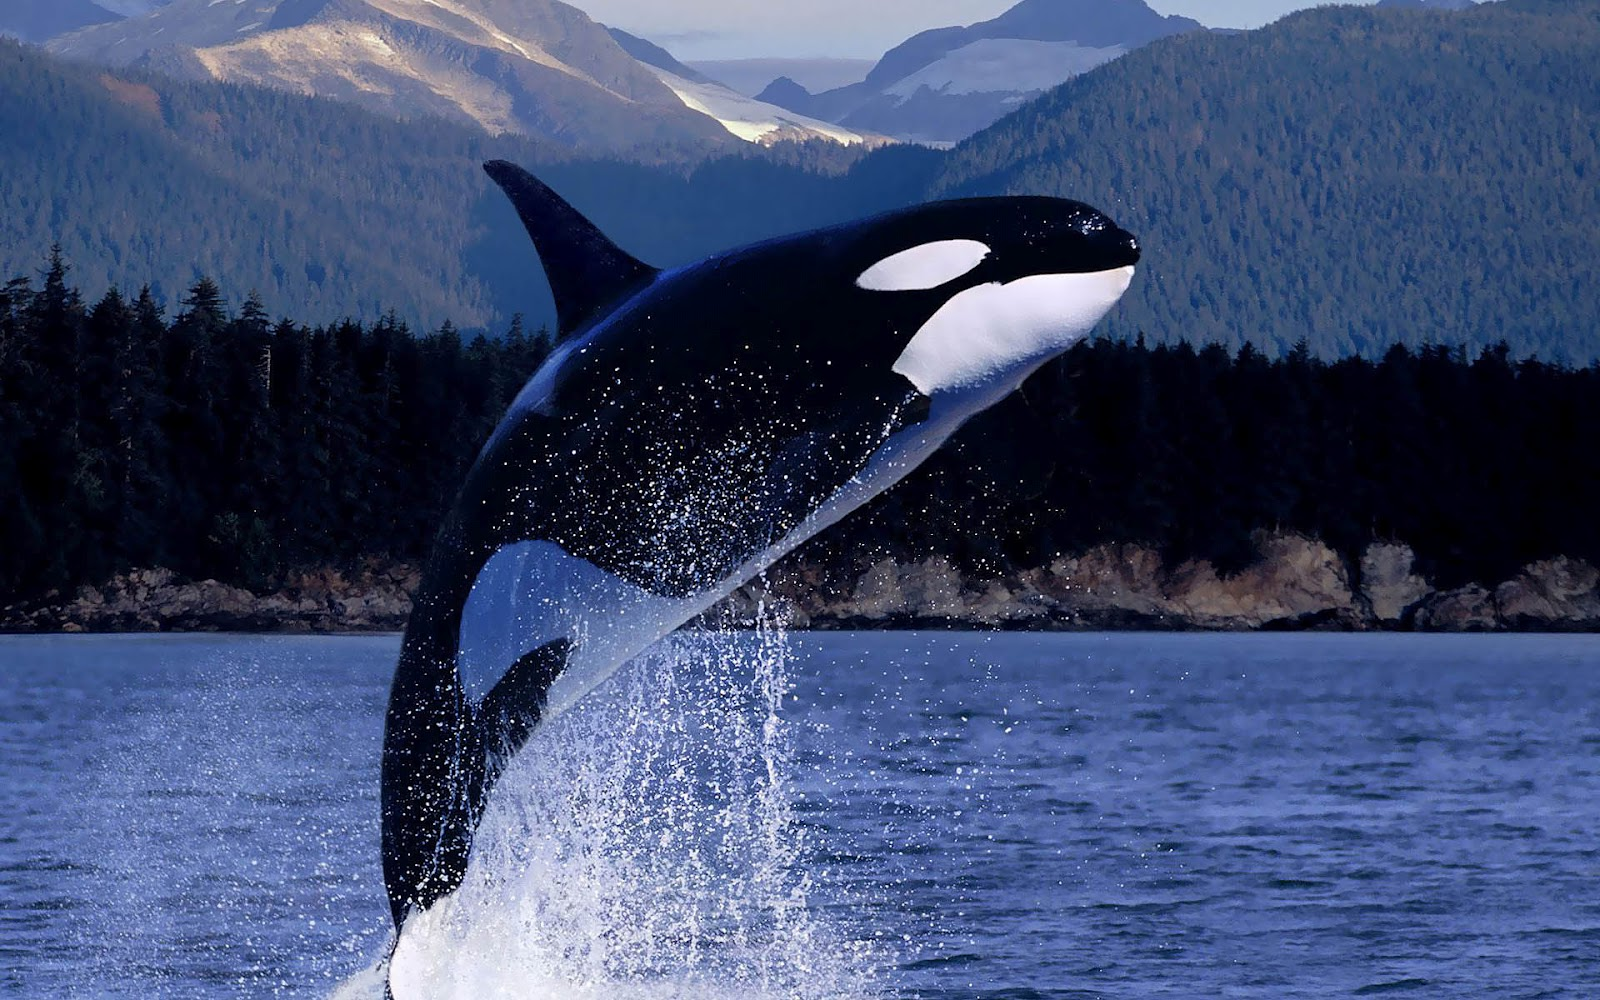 hd orca killer whale wallpaper with a orca killer whale jumping out of 1600x1000